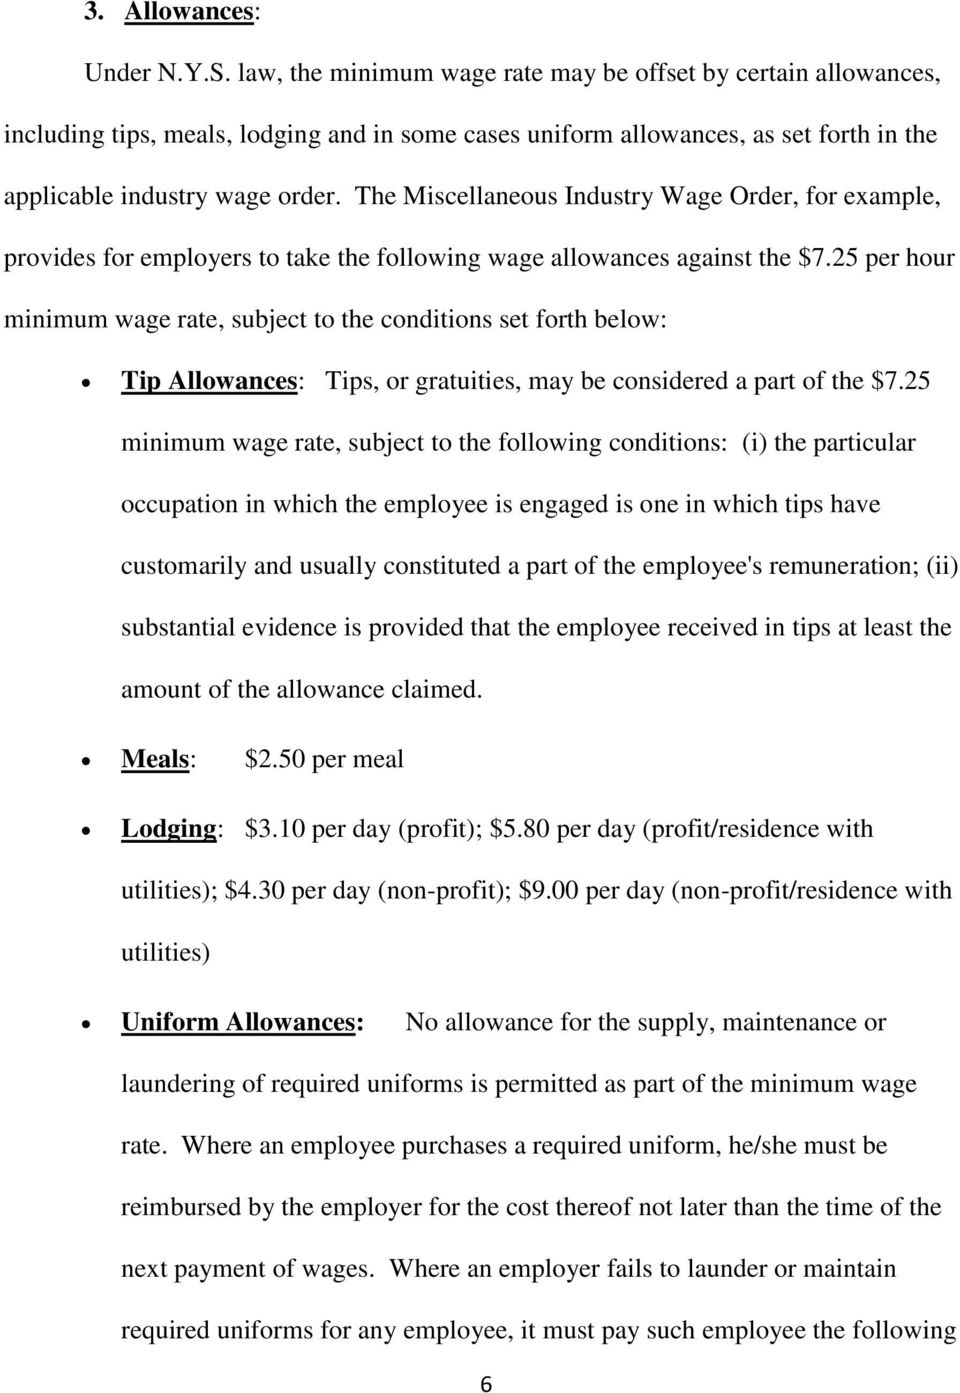 The Miscellaneous Industry Wage Order, for example, provides for employers to take the following wage allowances against the $7.